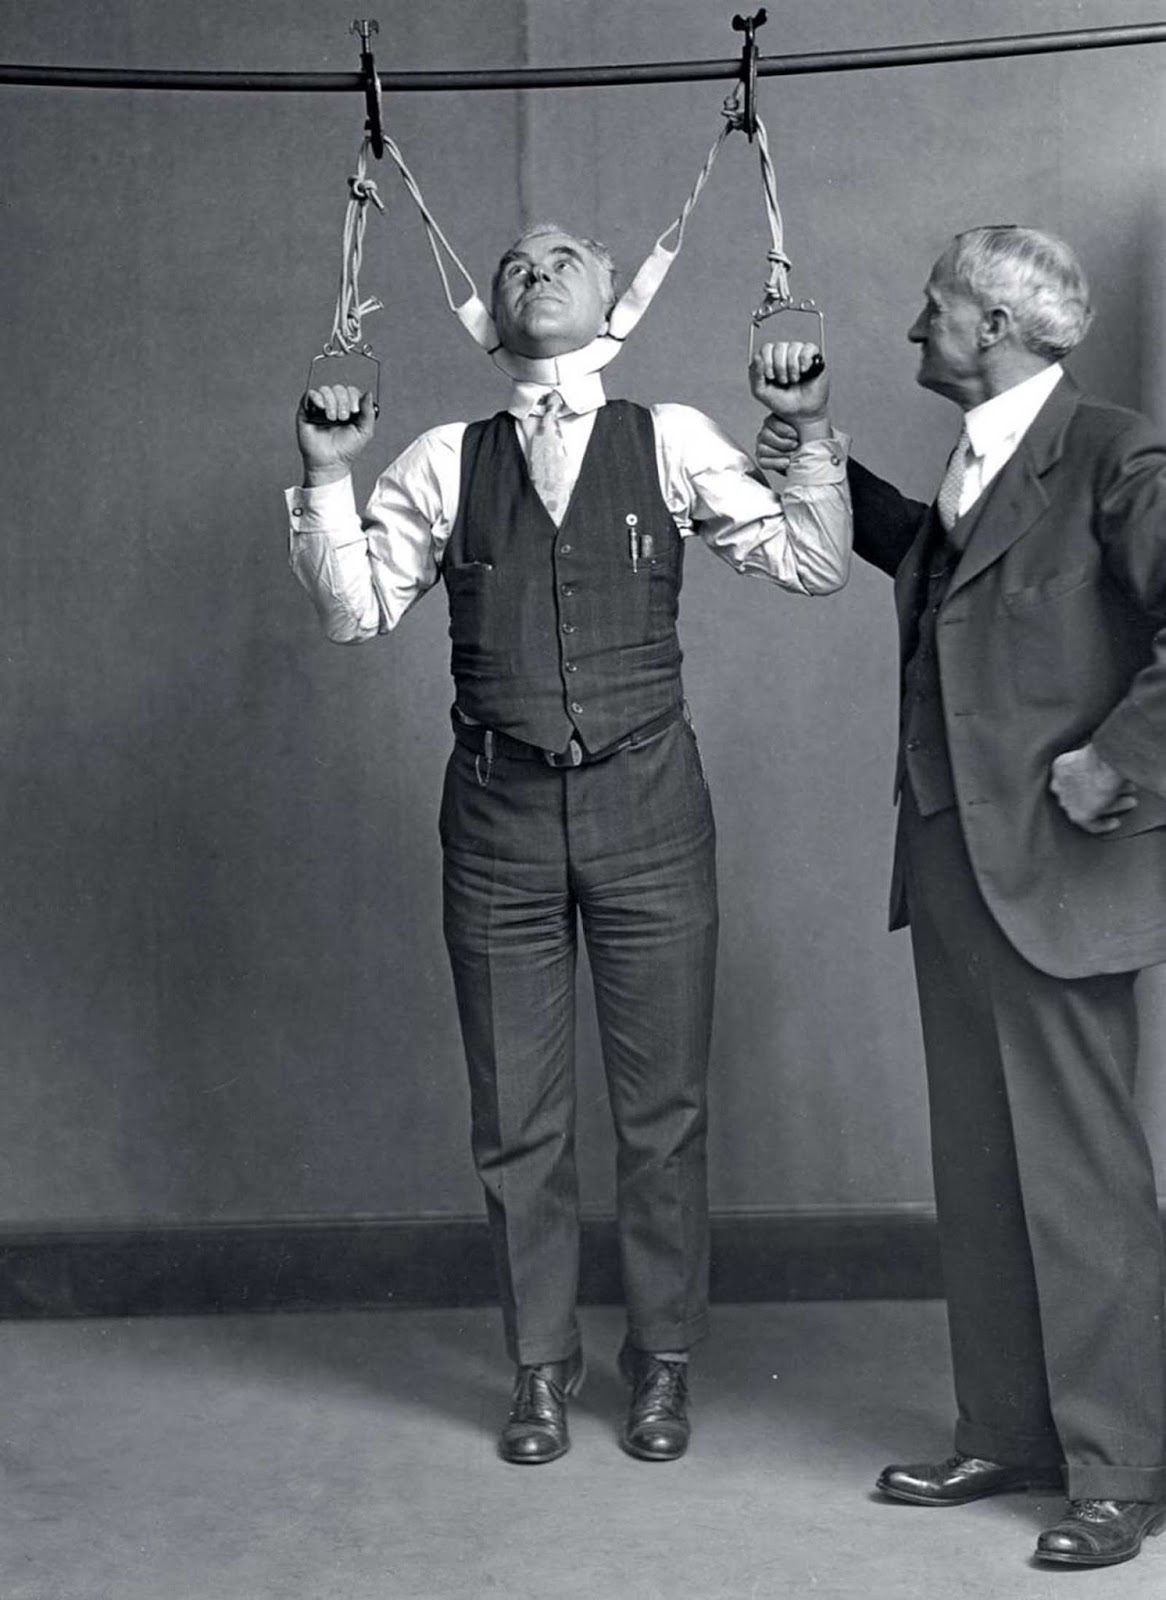 Post Office Department Inspector DF Angier (left) and Dr. LF Kebler, formerly of the Food and Drug Administration, try out a stretching device which claimed to increase height by 2 to 6 inches, 1931.